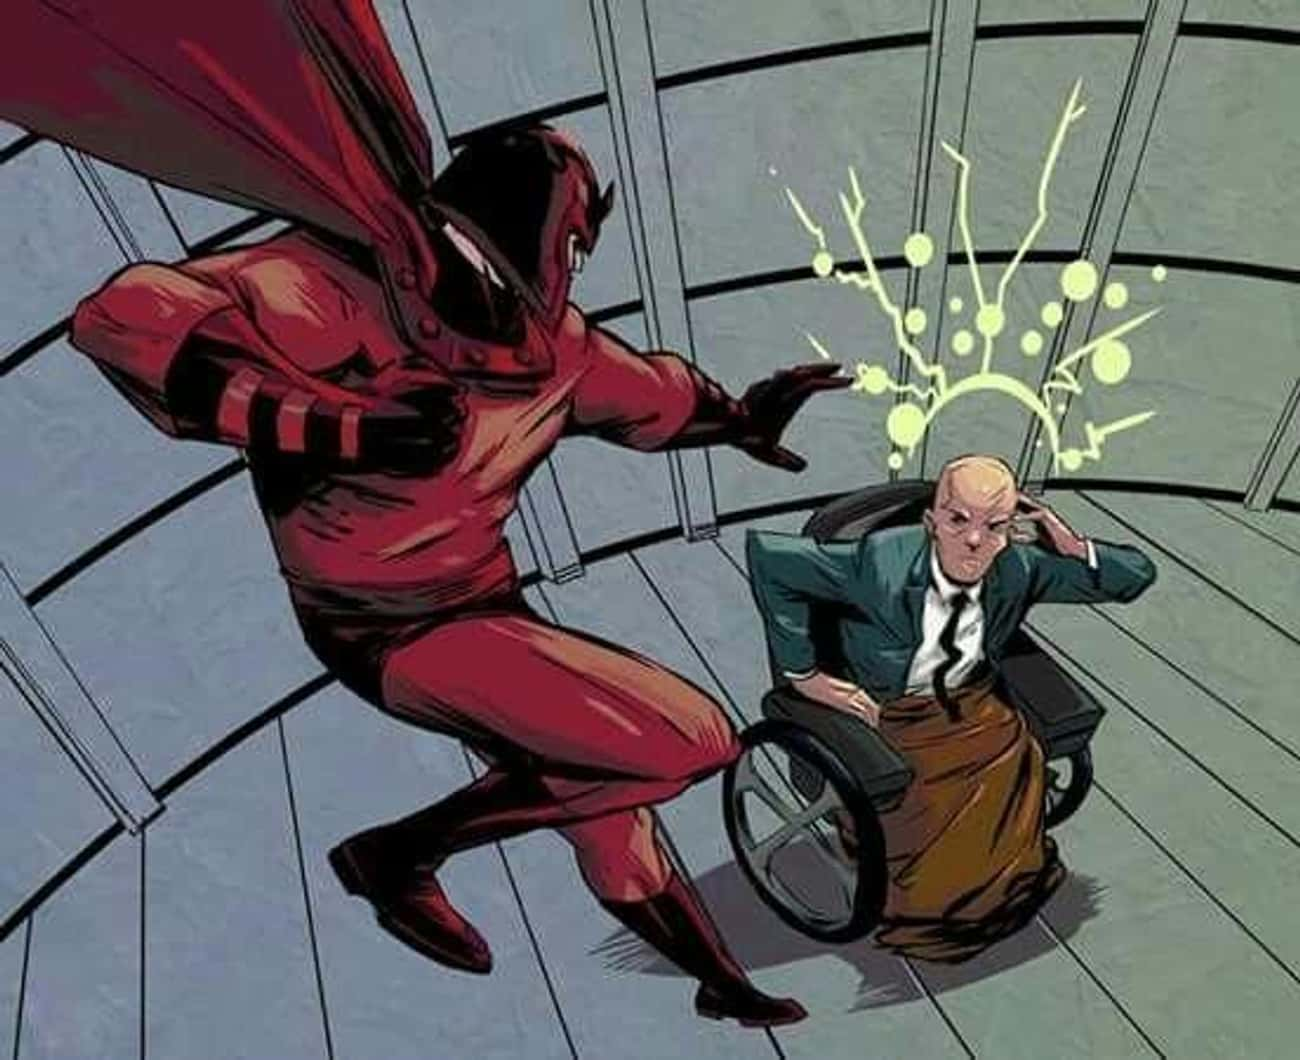 Professor X And Magneto Are The Original BFFs-Turned-Enemies-Turned-BFFs